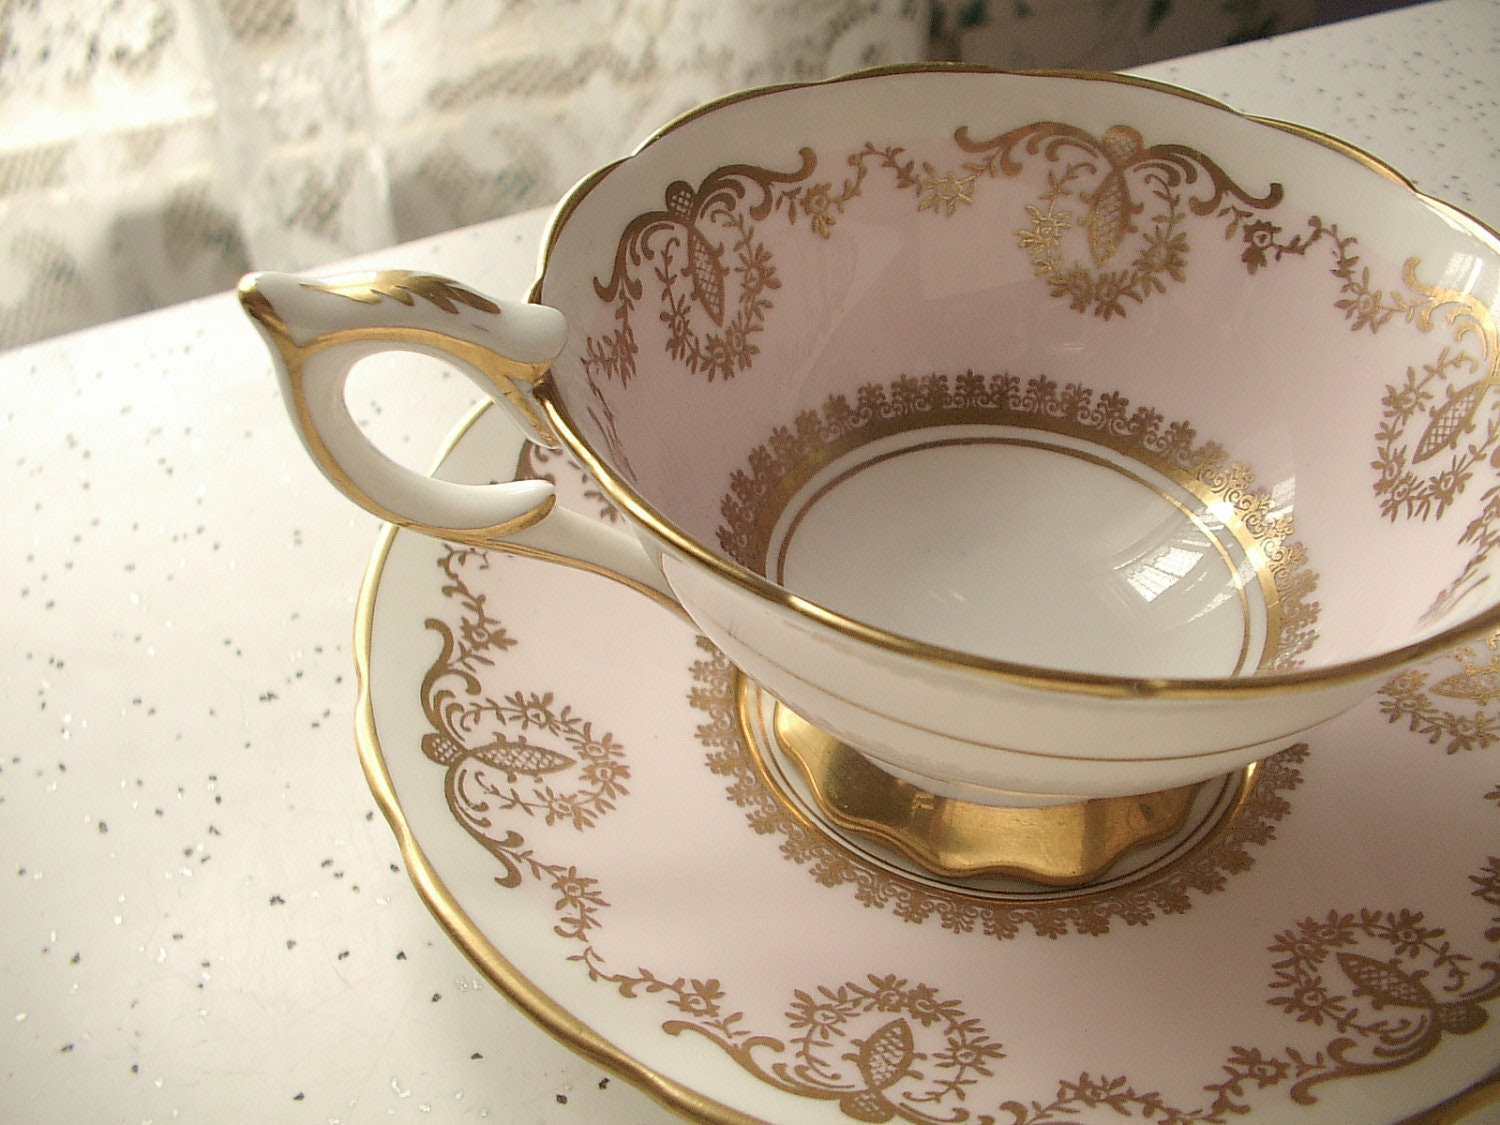 vintage pink and gold tea cup and saucer set, Royal Stafford English bone china tea set, art nouveau - ShoponSherman